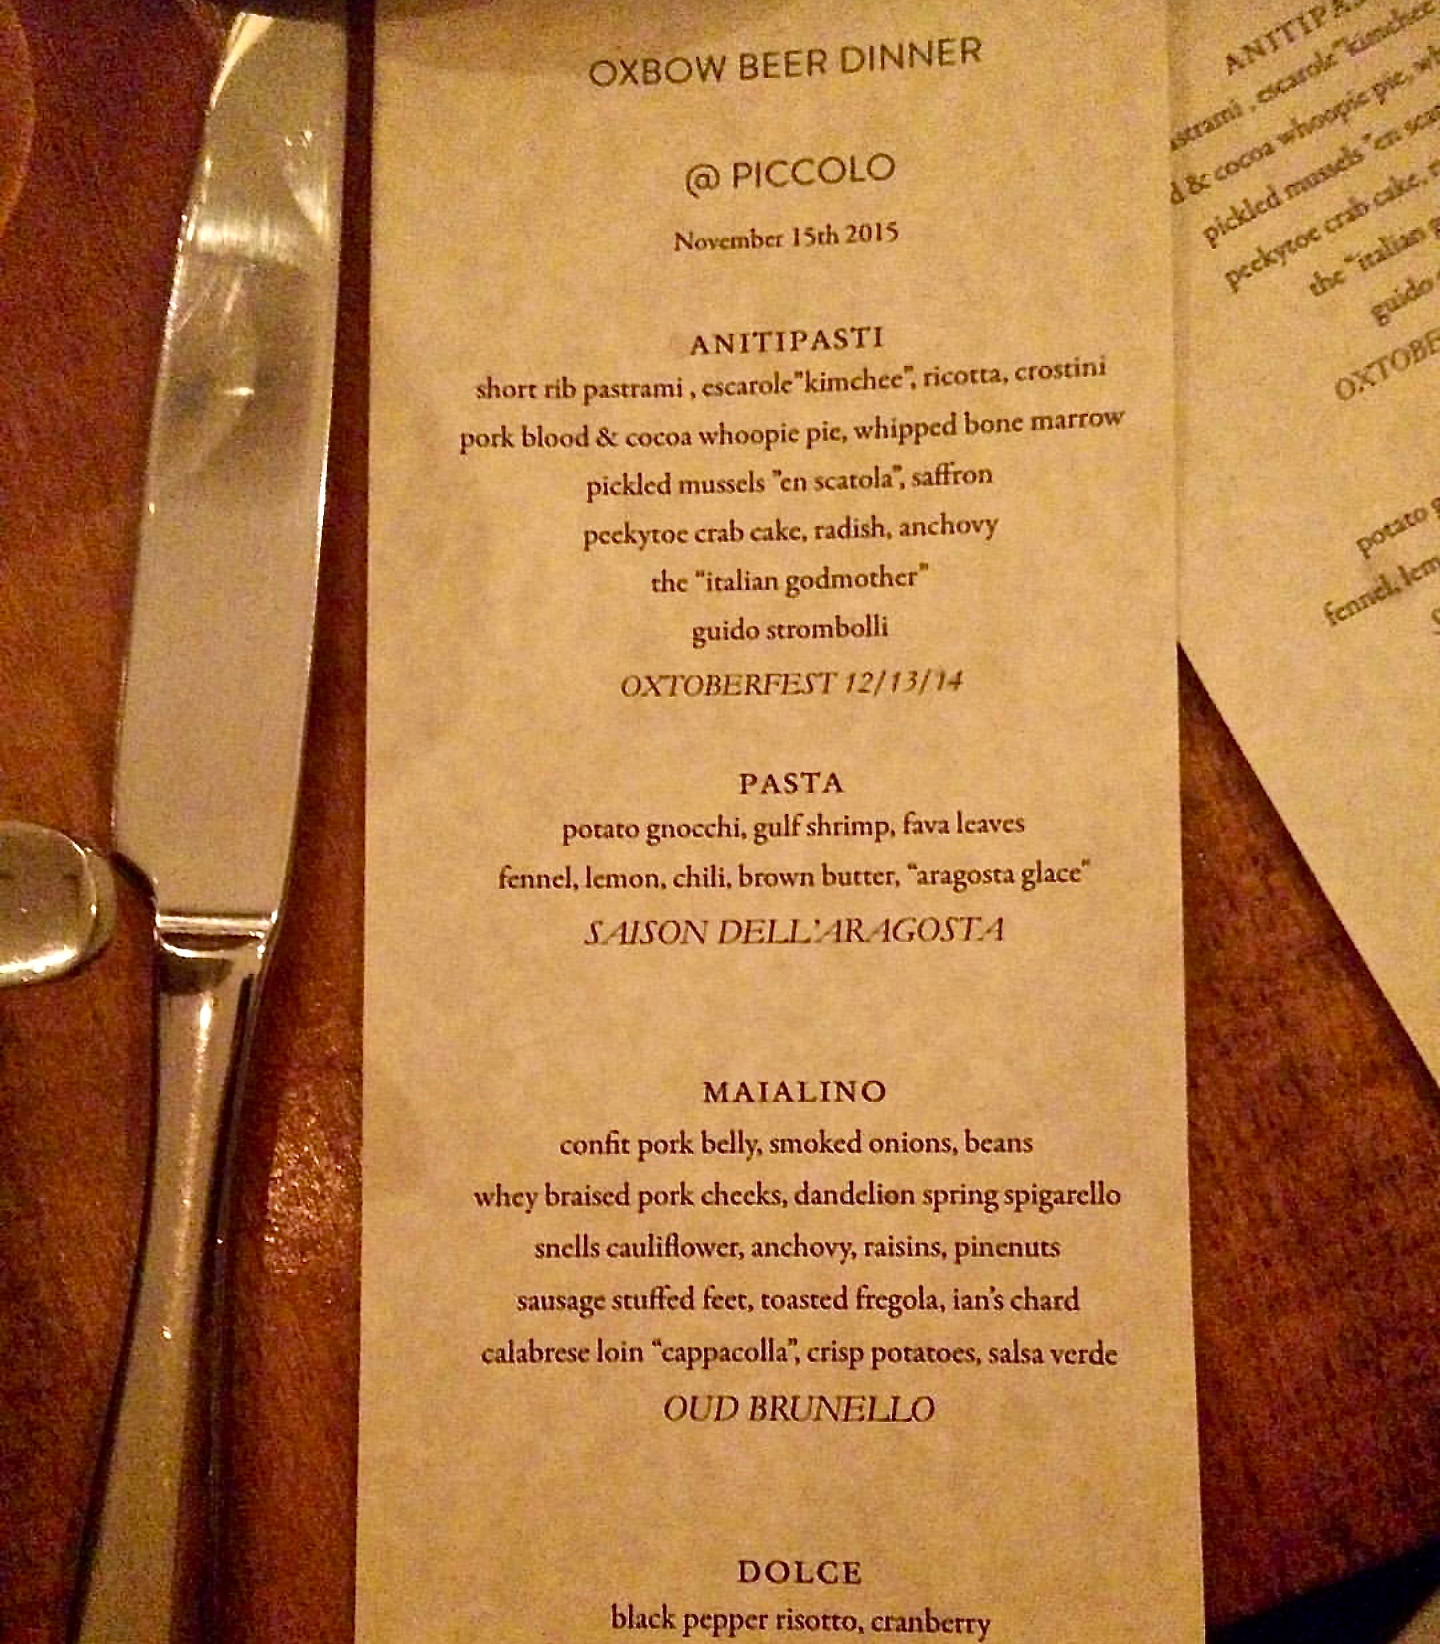 Sample menu from 2015's Oxbow Beer Dinner at Piccolo.